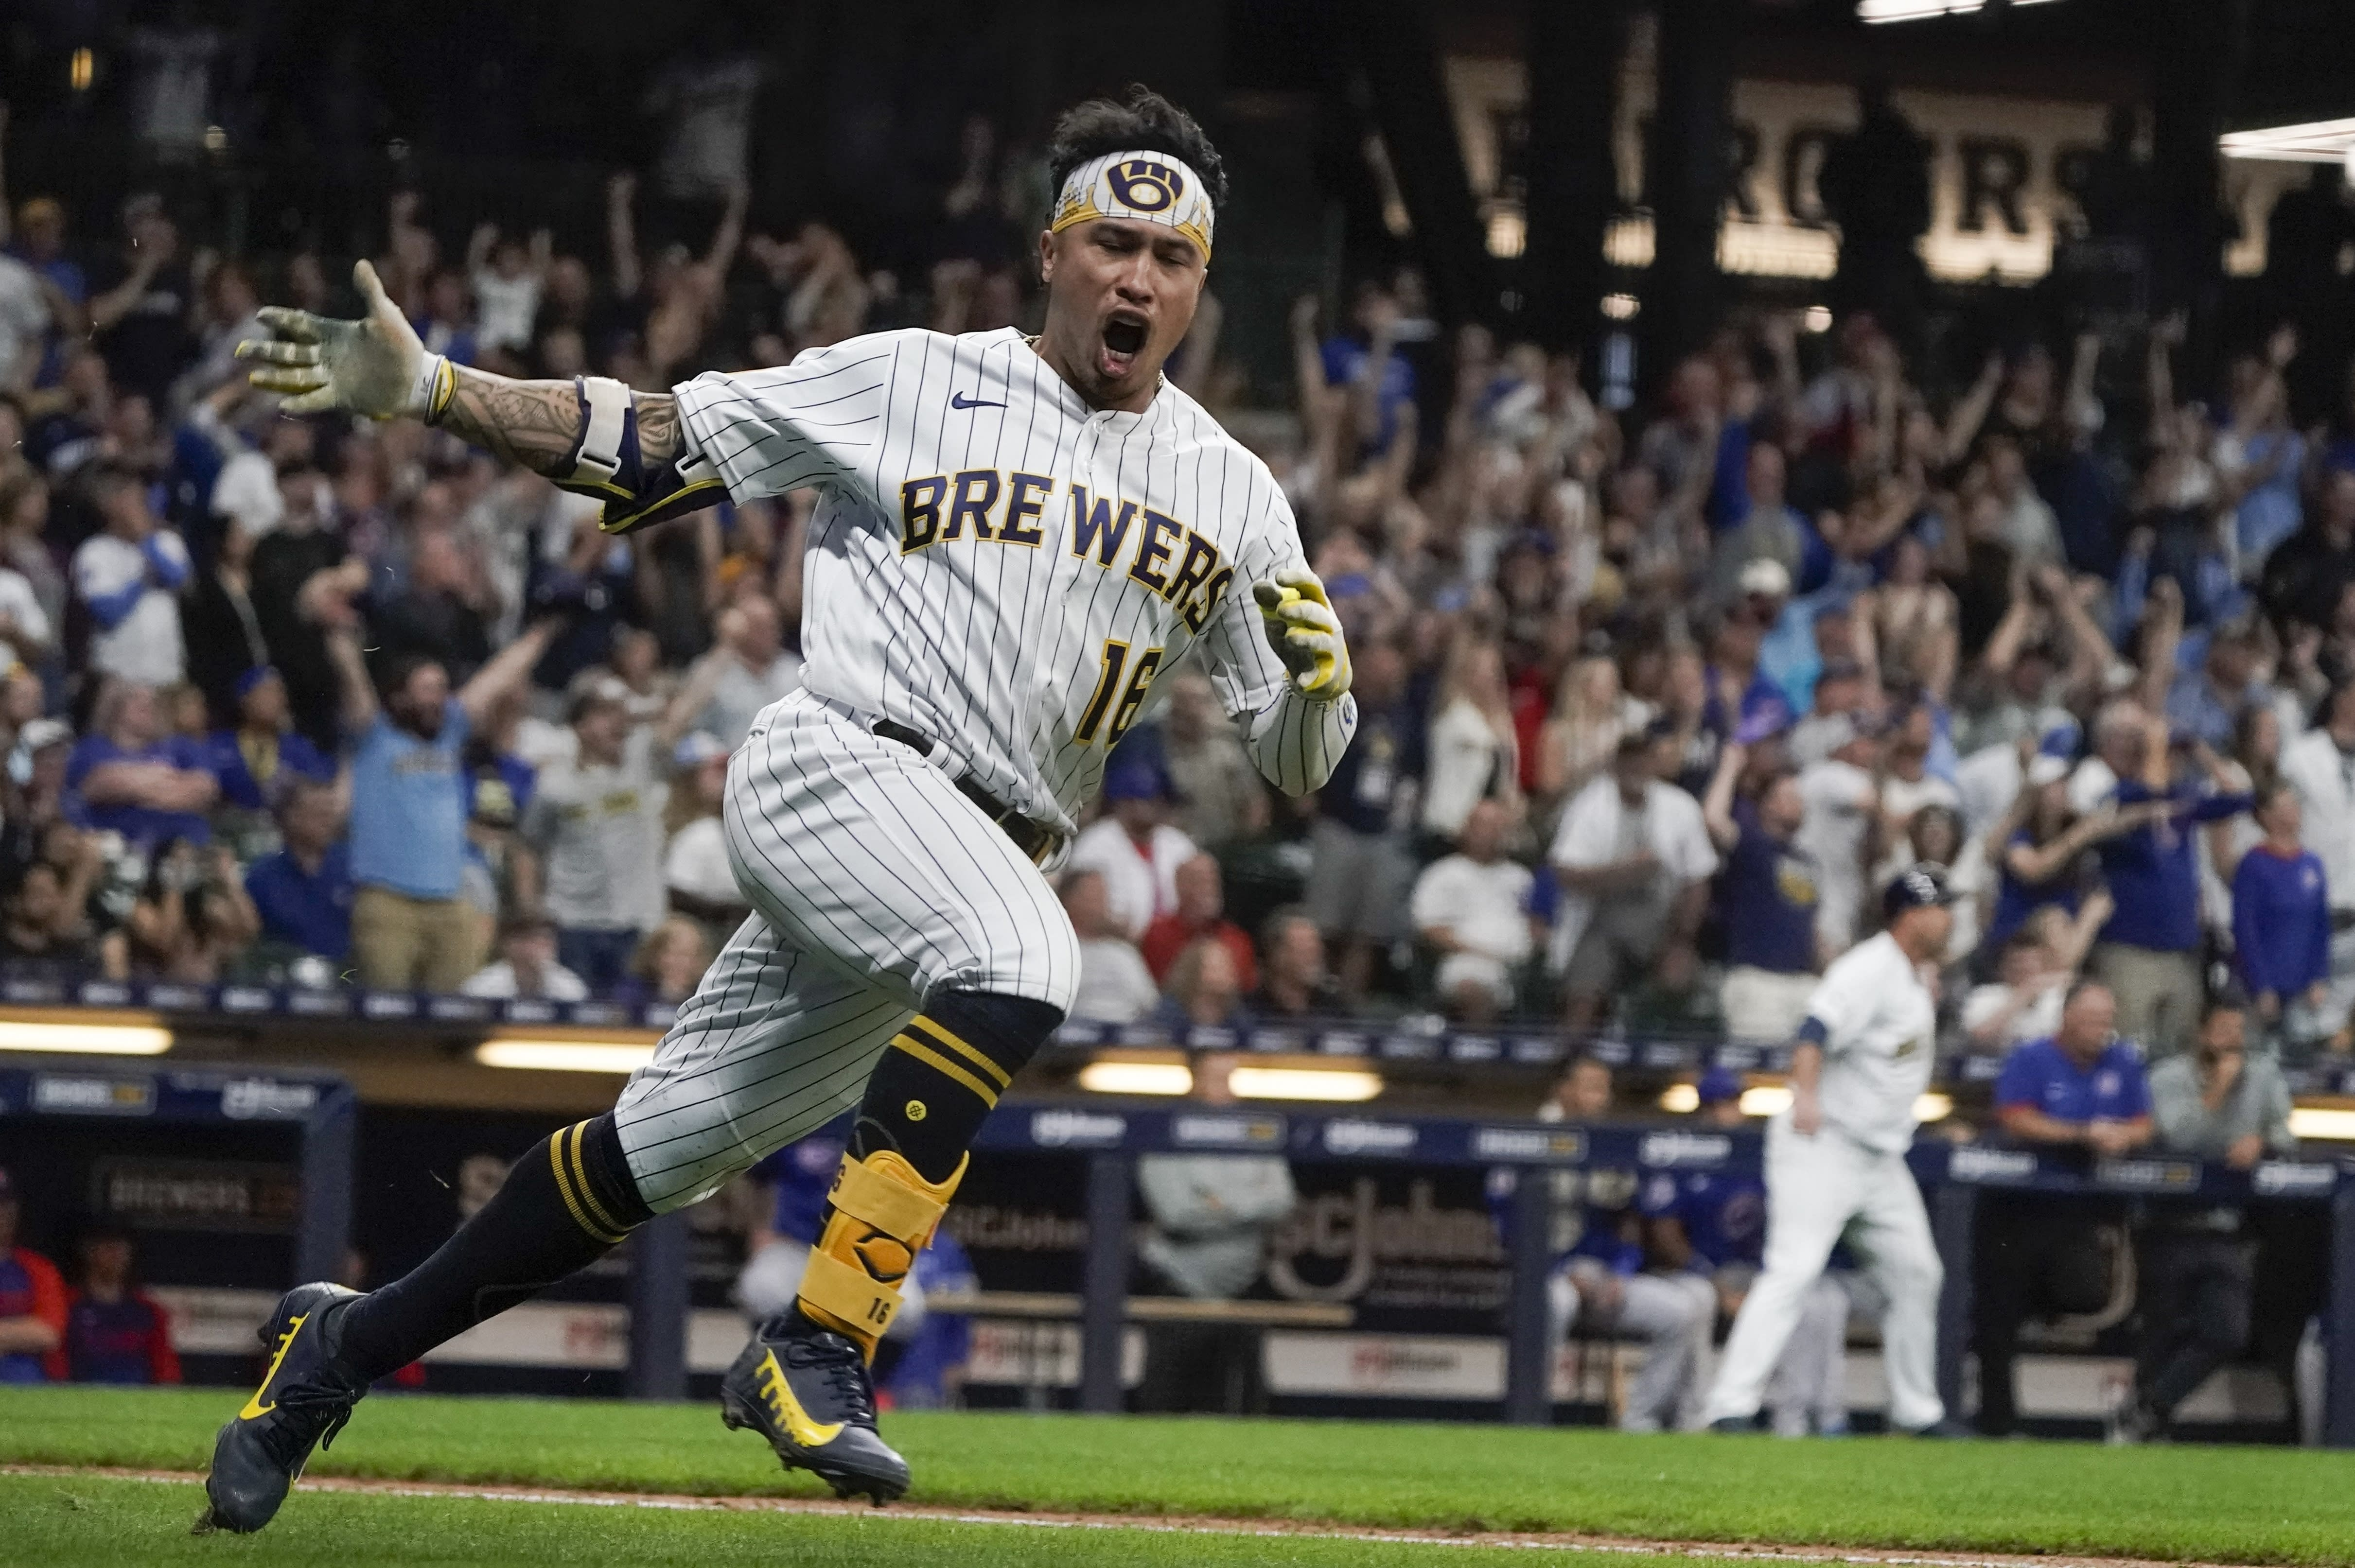 Brewers rally to top Cubs 8-5, move closer to division title